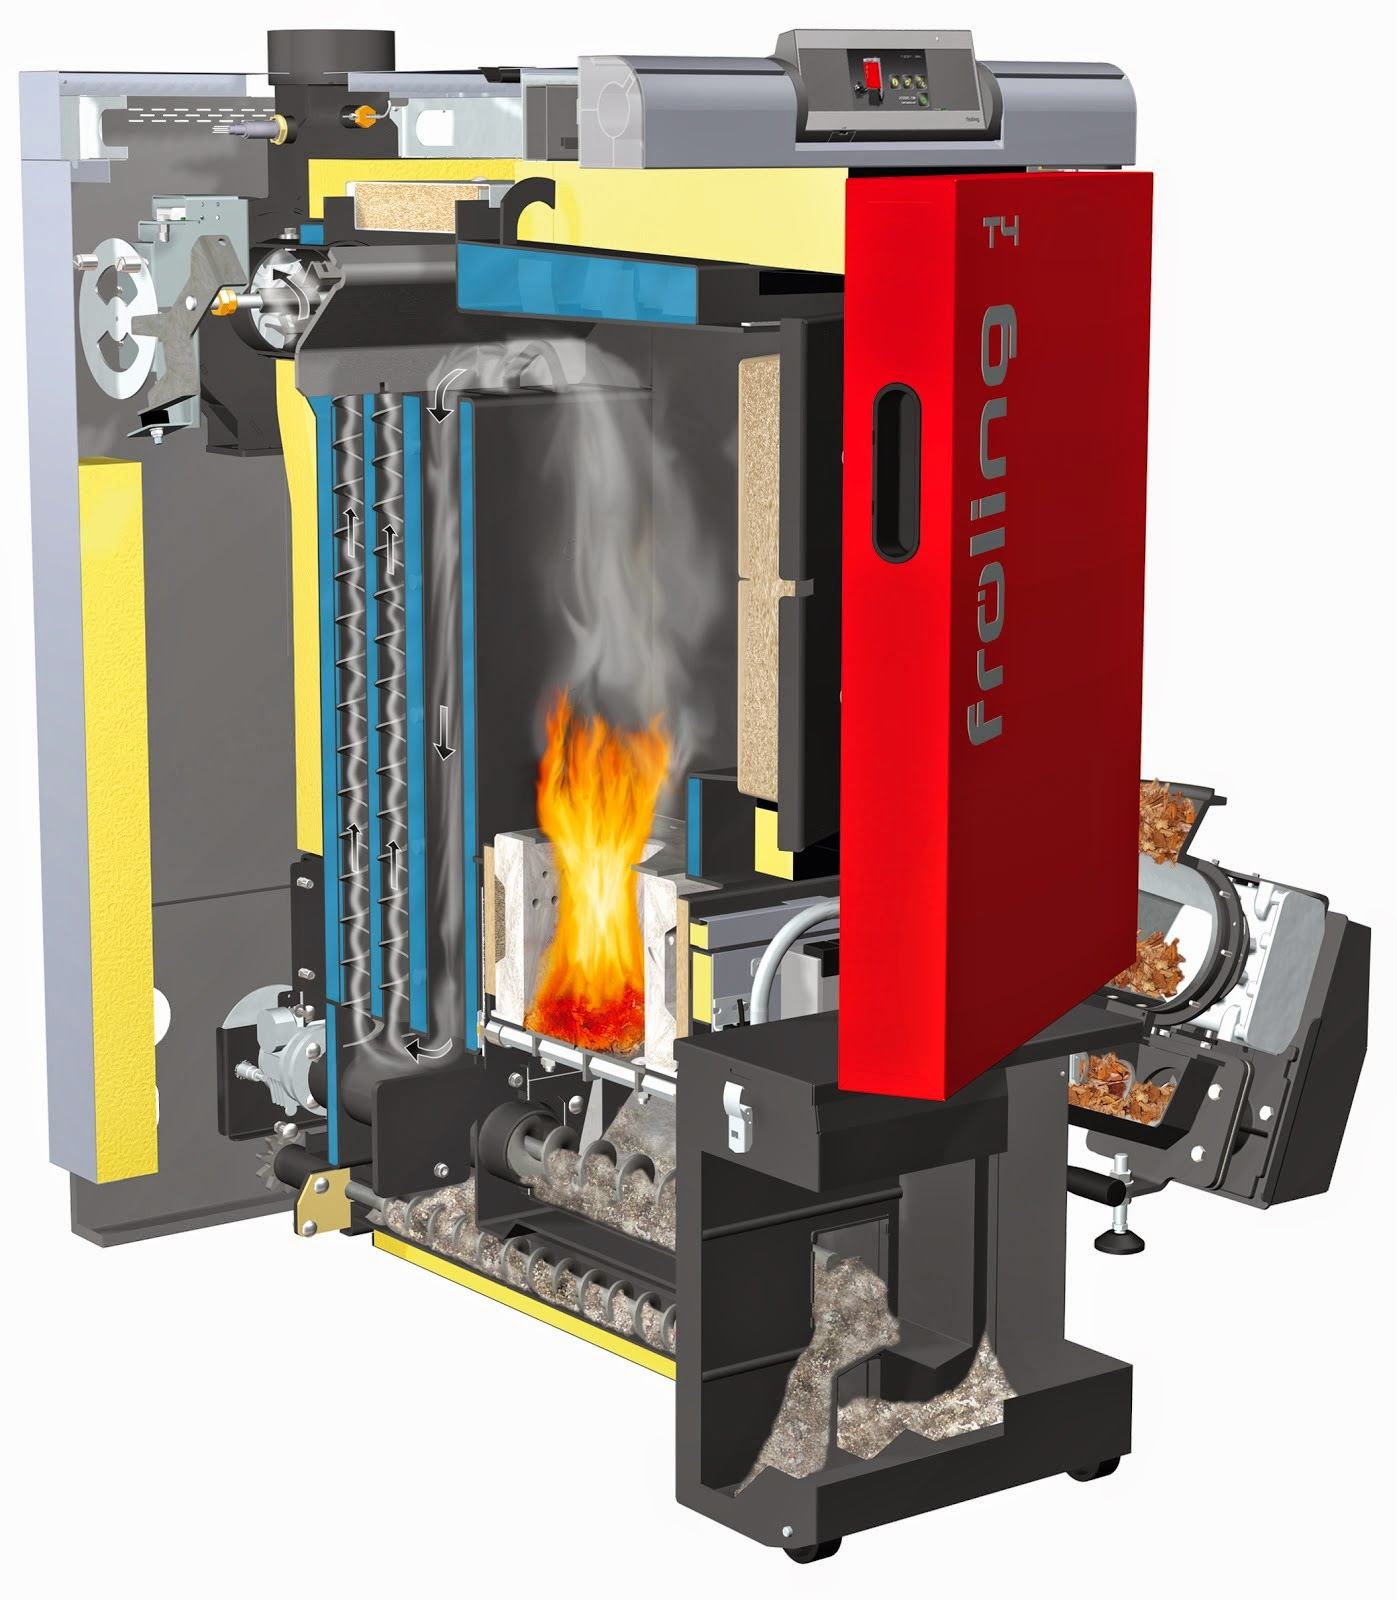 The Fröling T4 Wood Chip Boiler